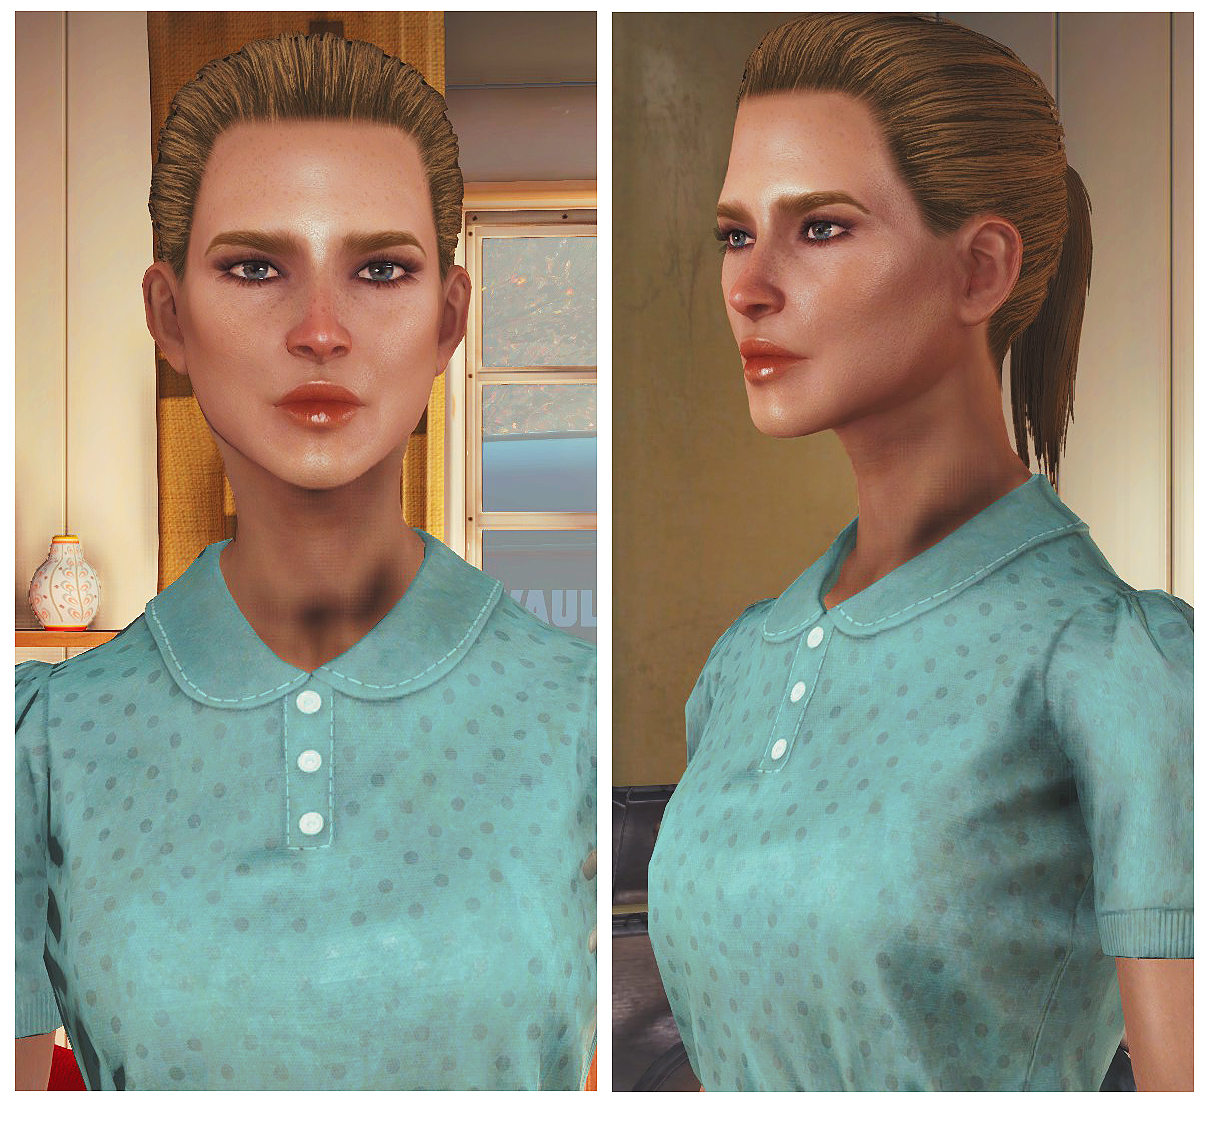 Young Female Face Texture 1.0 для Fallout 4 - Скриншот 2